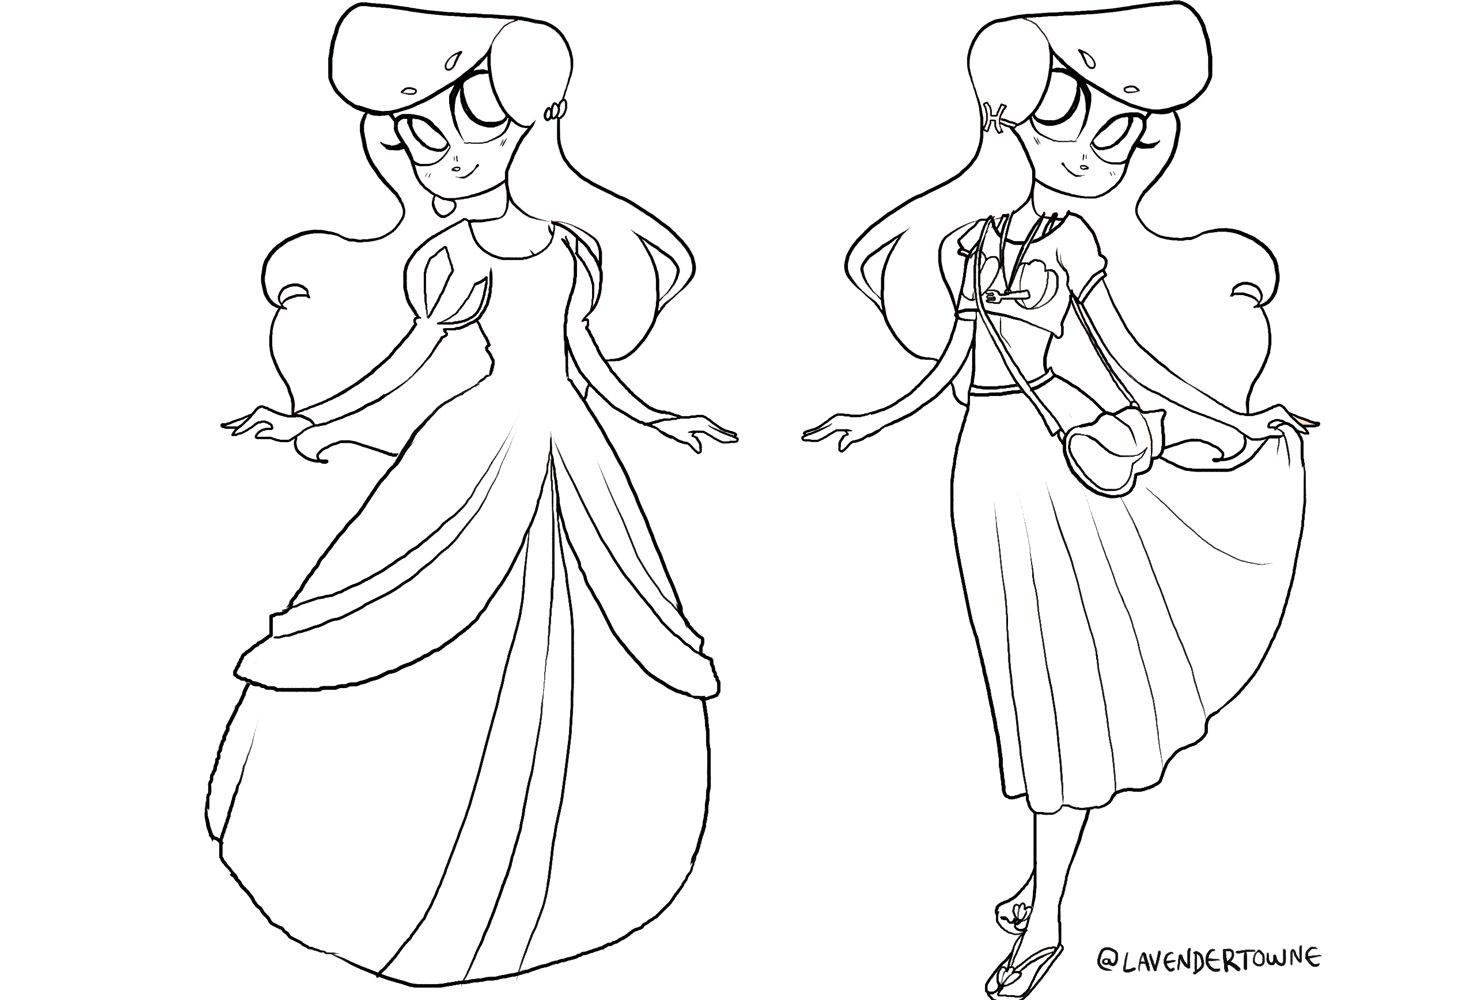 Ariel Modern Coloring Page | Pinterest | Modern colors, Ariel and ...